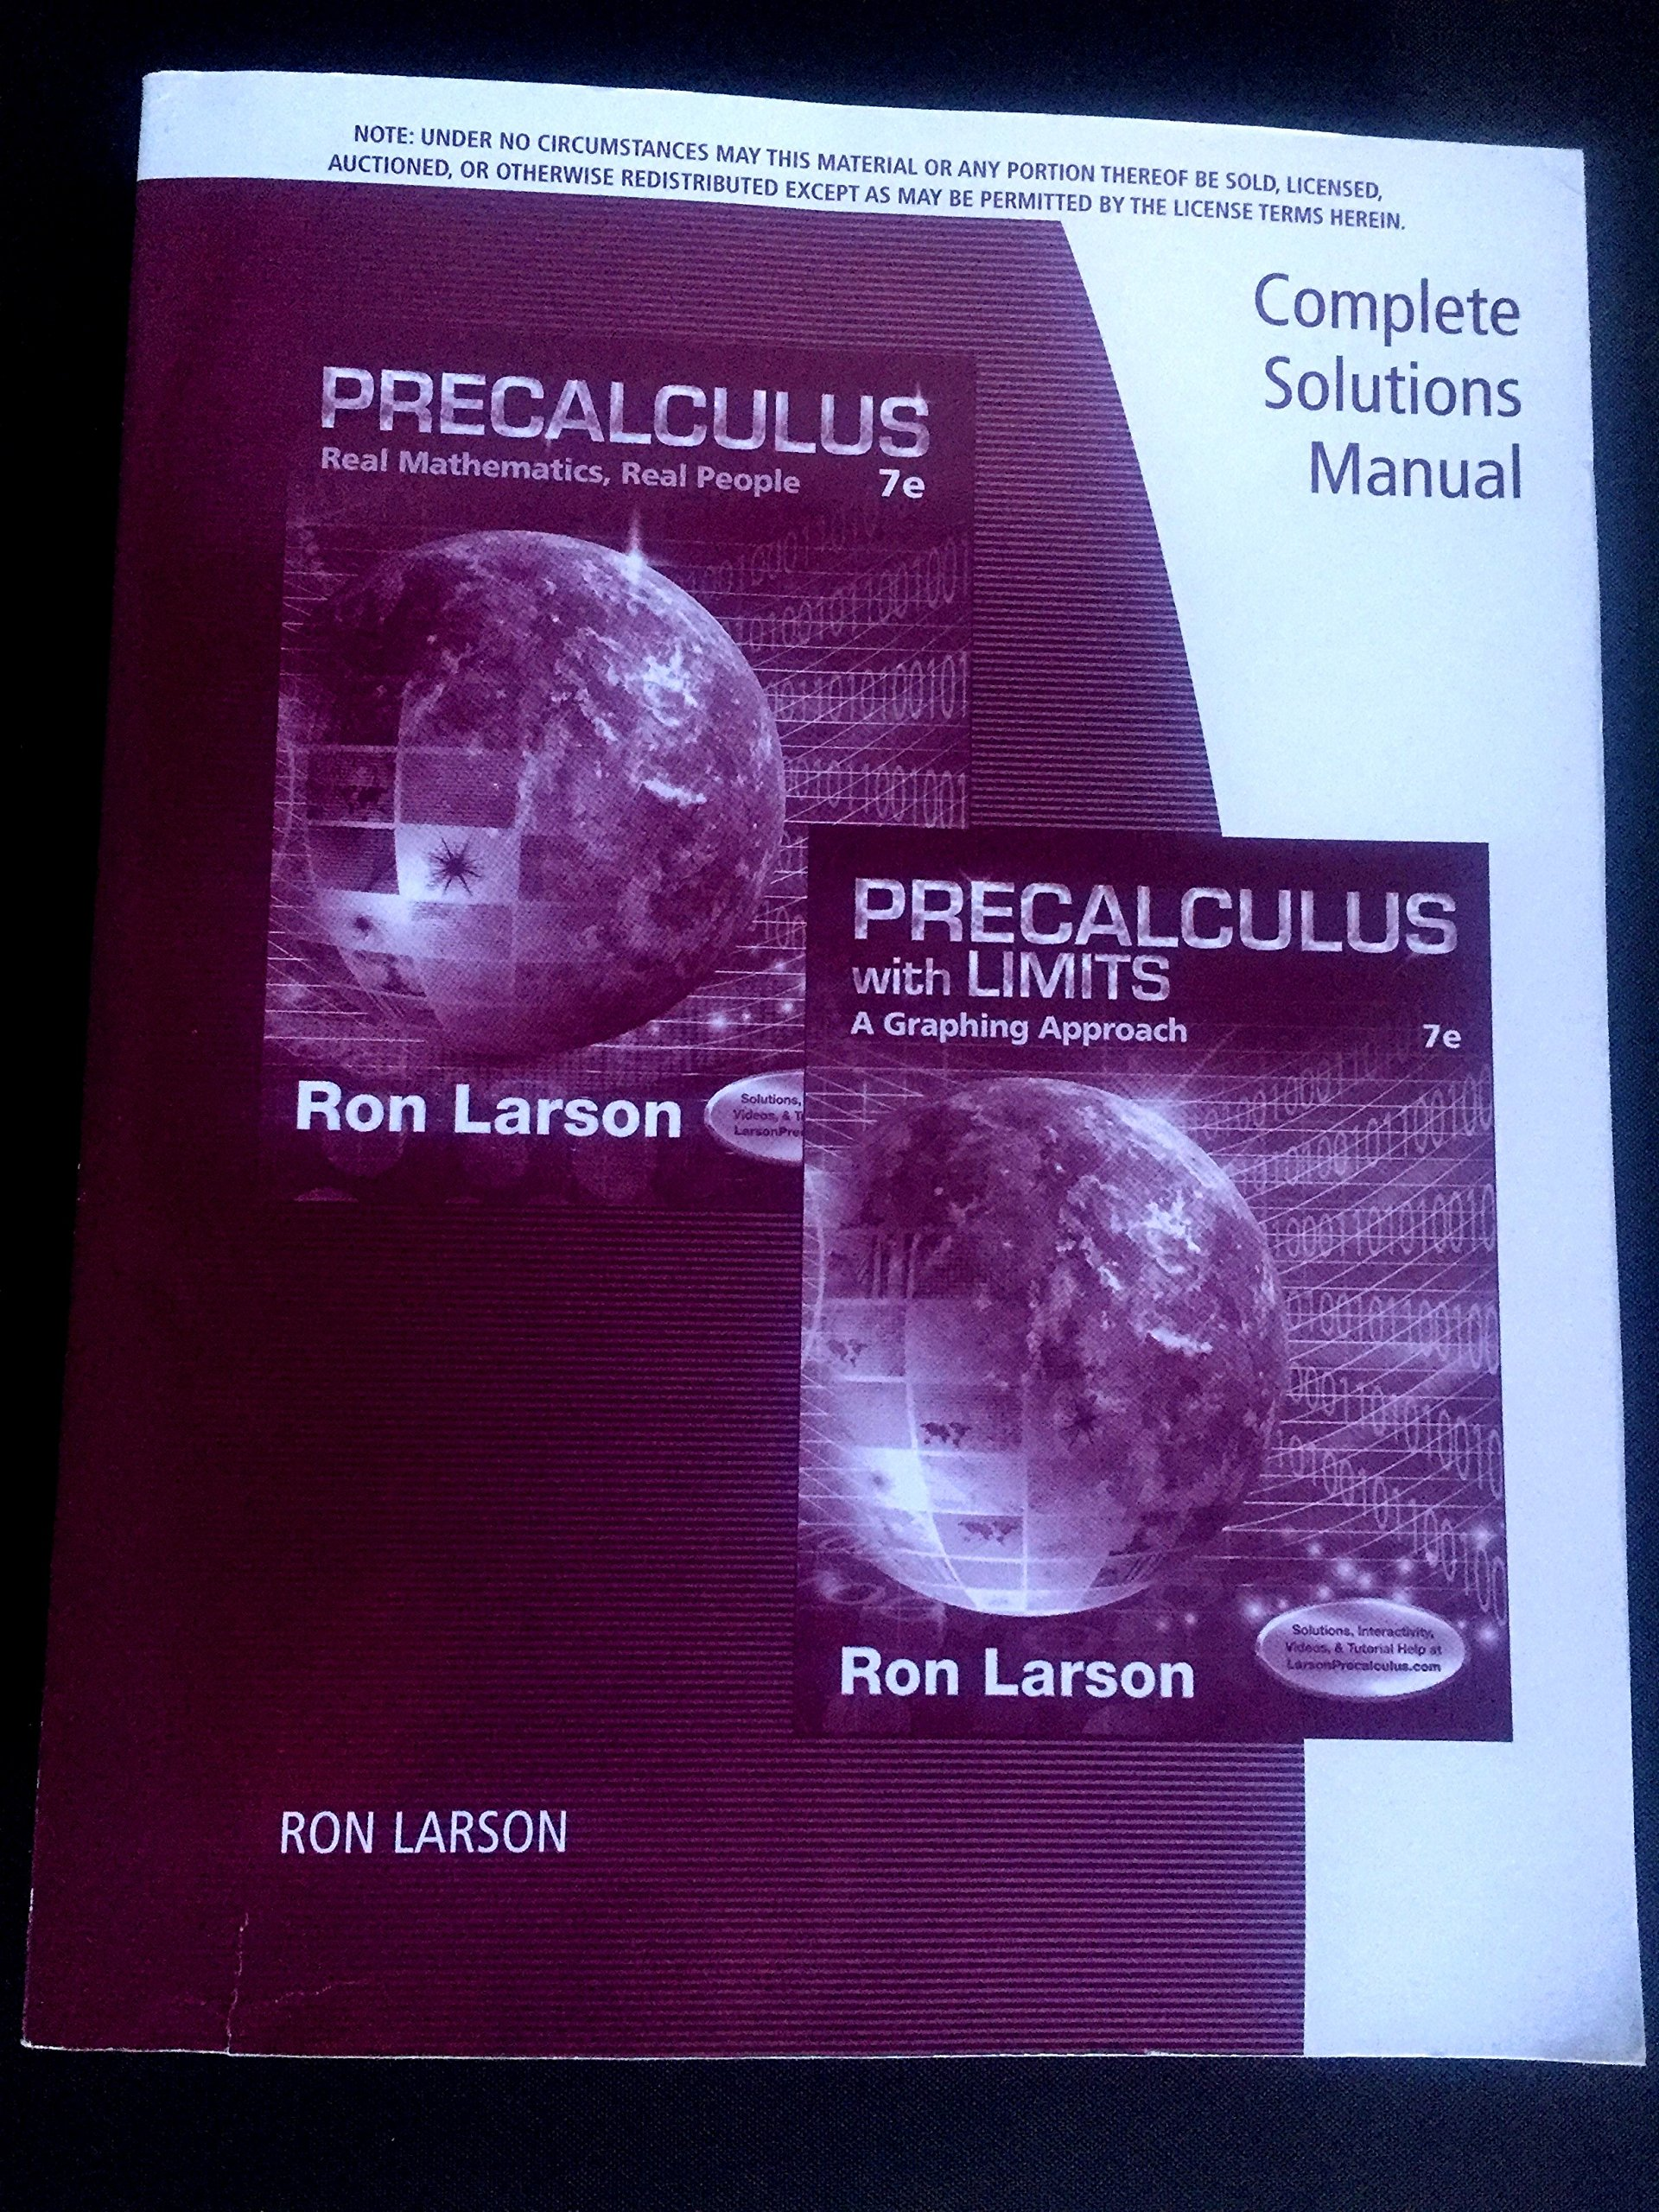 Precalculus With Limits Ron Larson Pdf